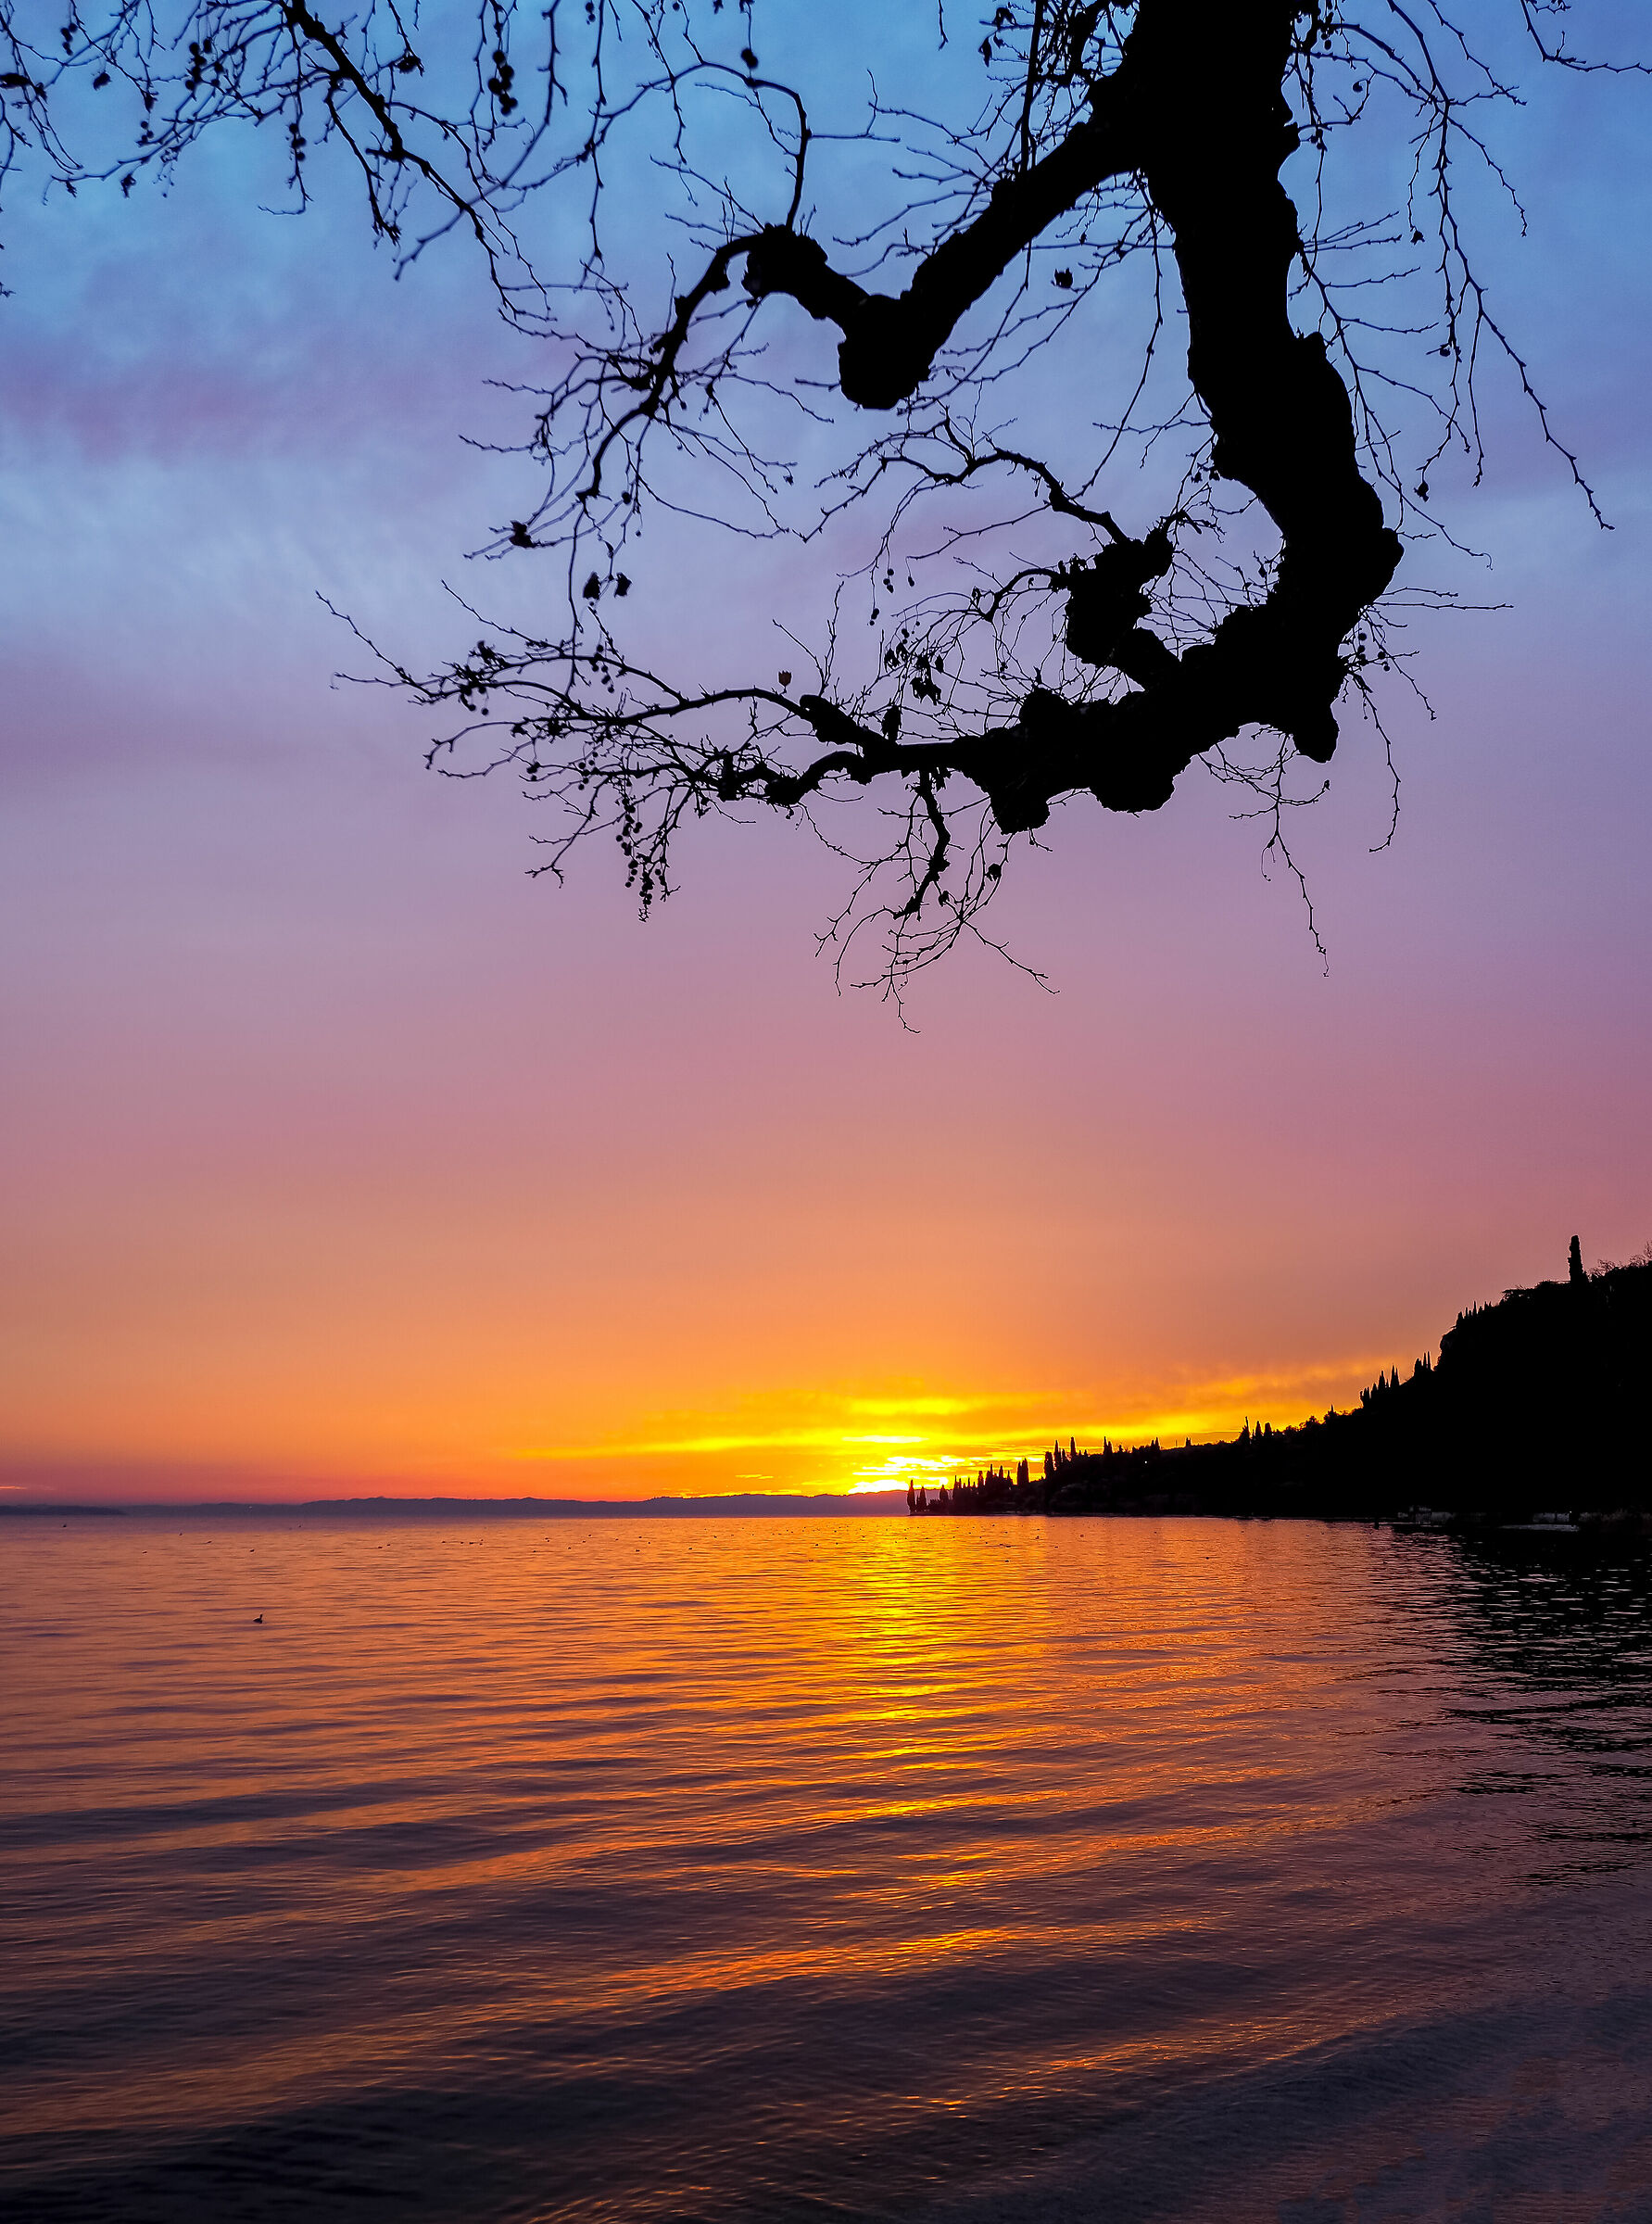 sunset over the lake...